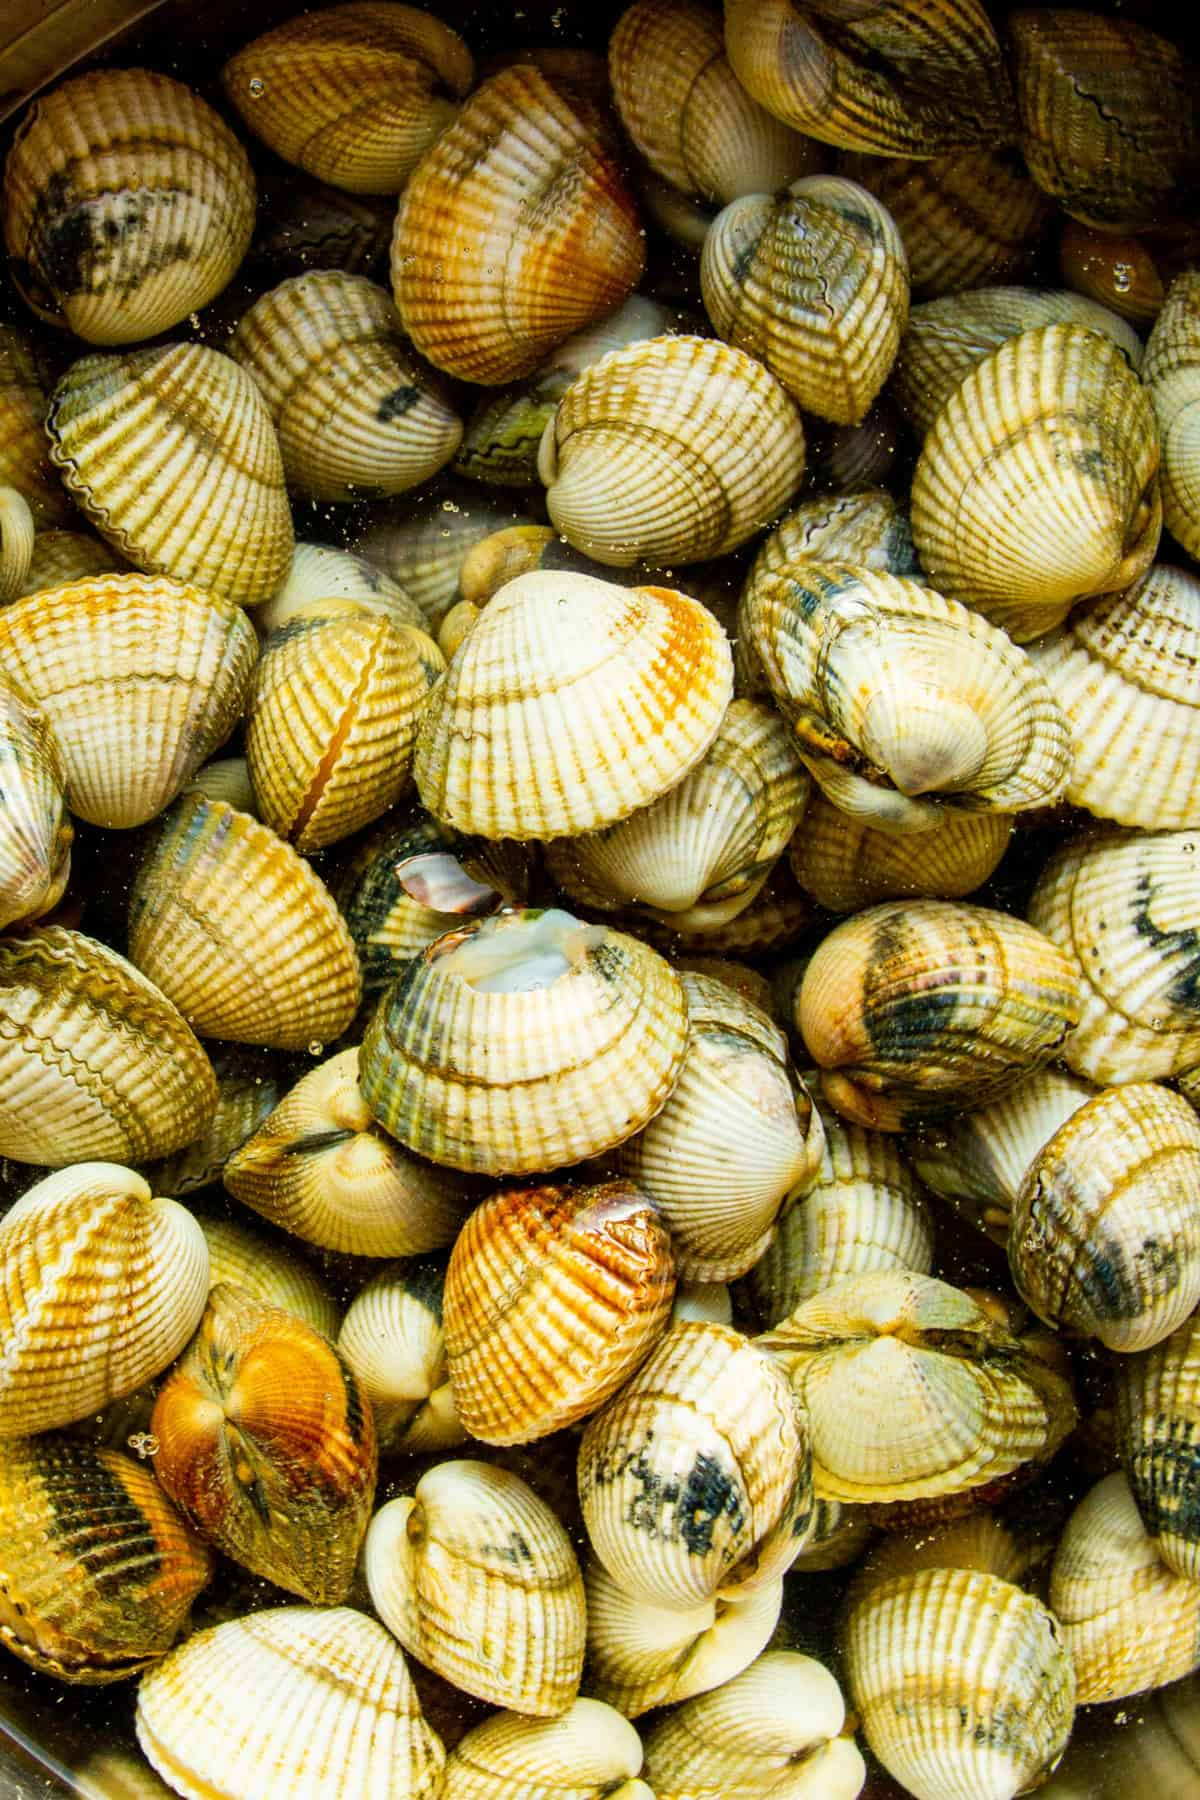 Raw cockles in water.